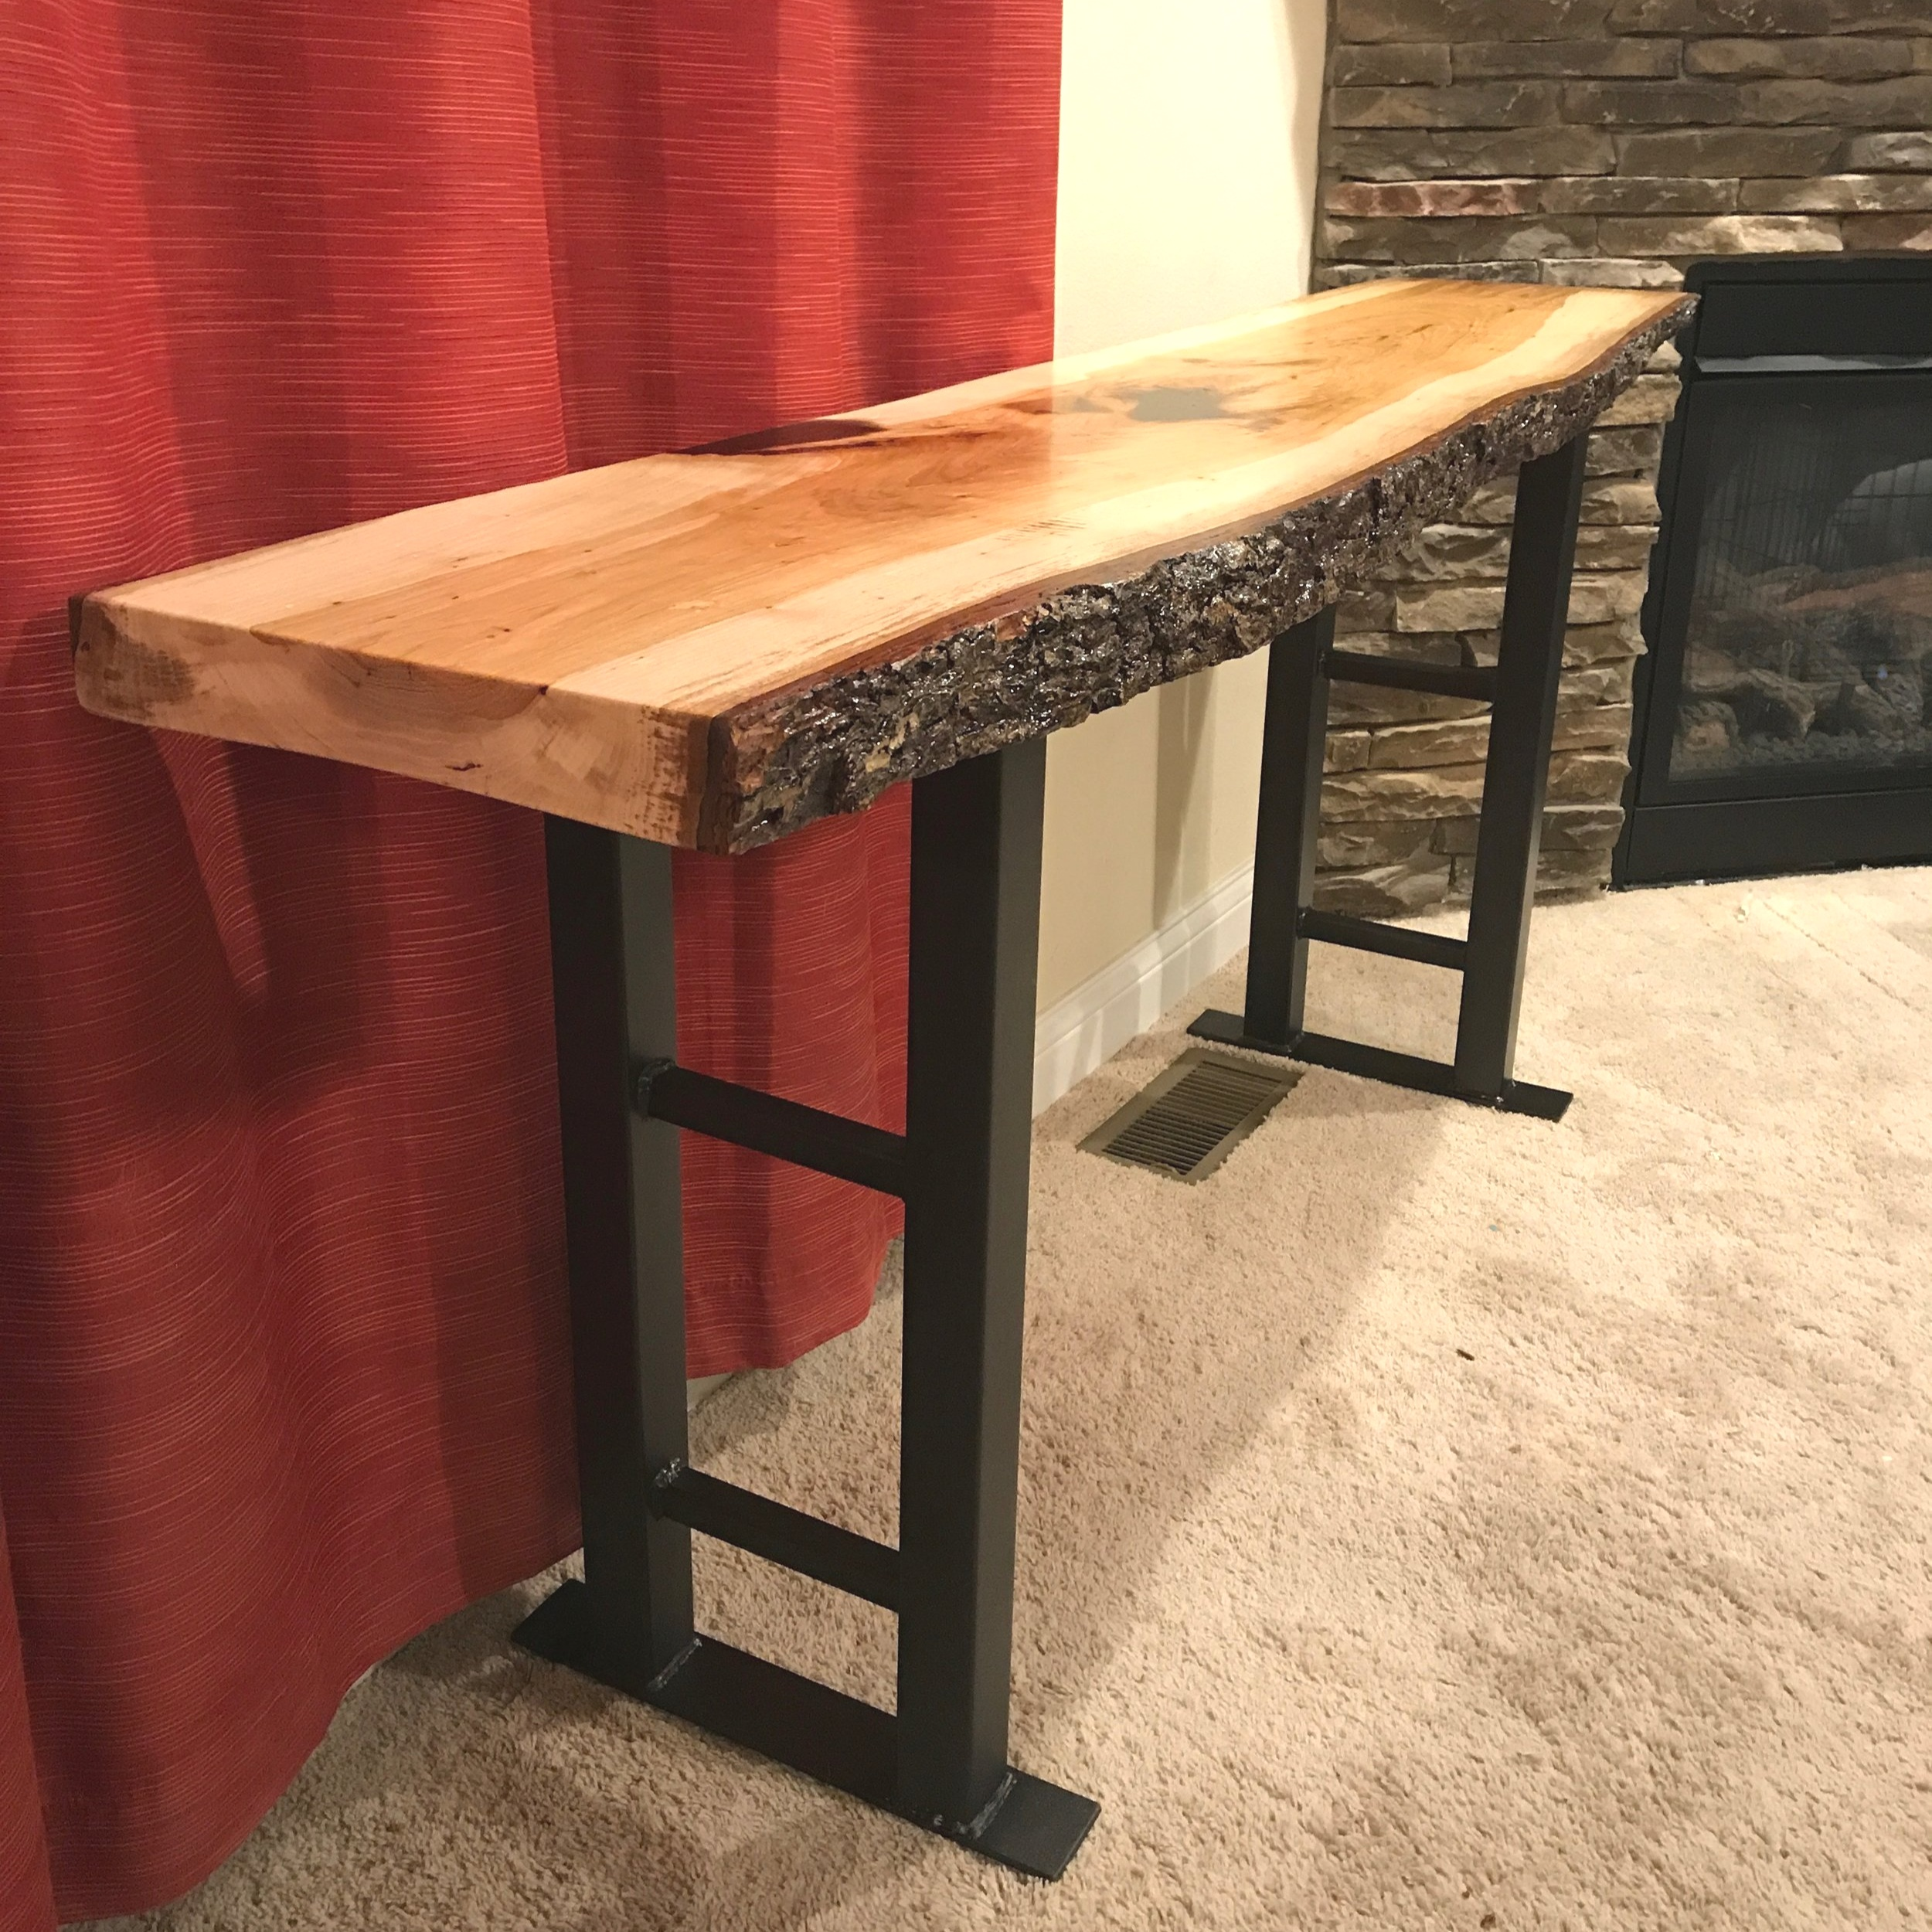 Live edge Pecan hall table. 2 inch square steel legs.